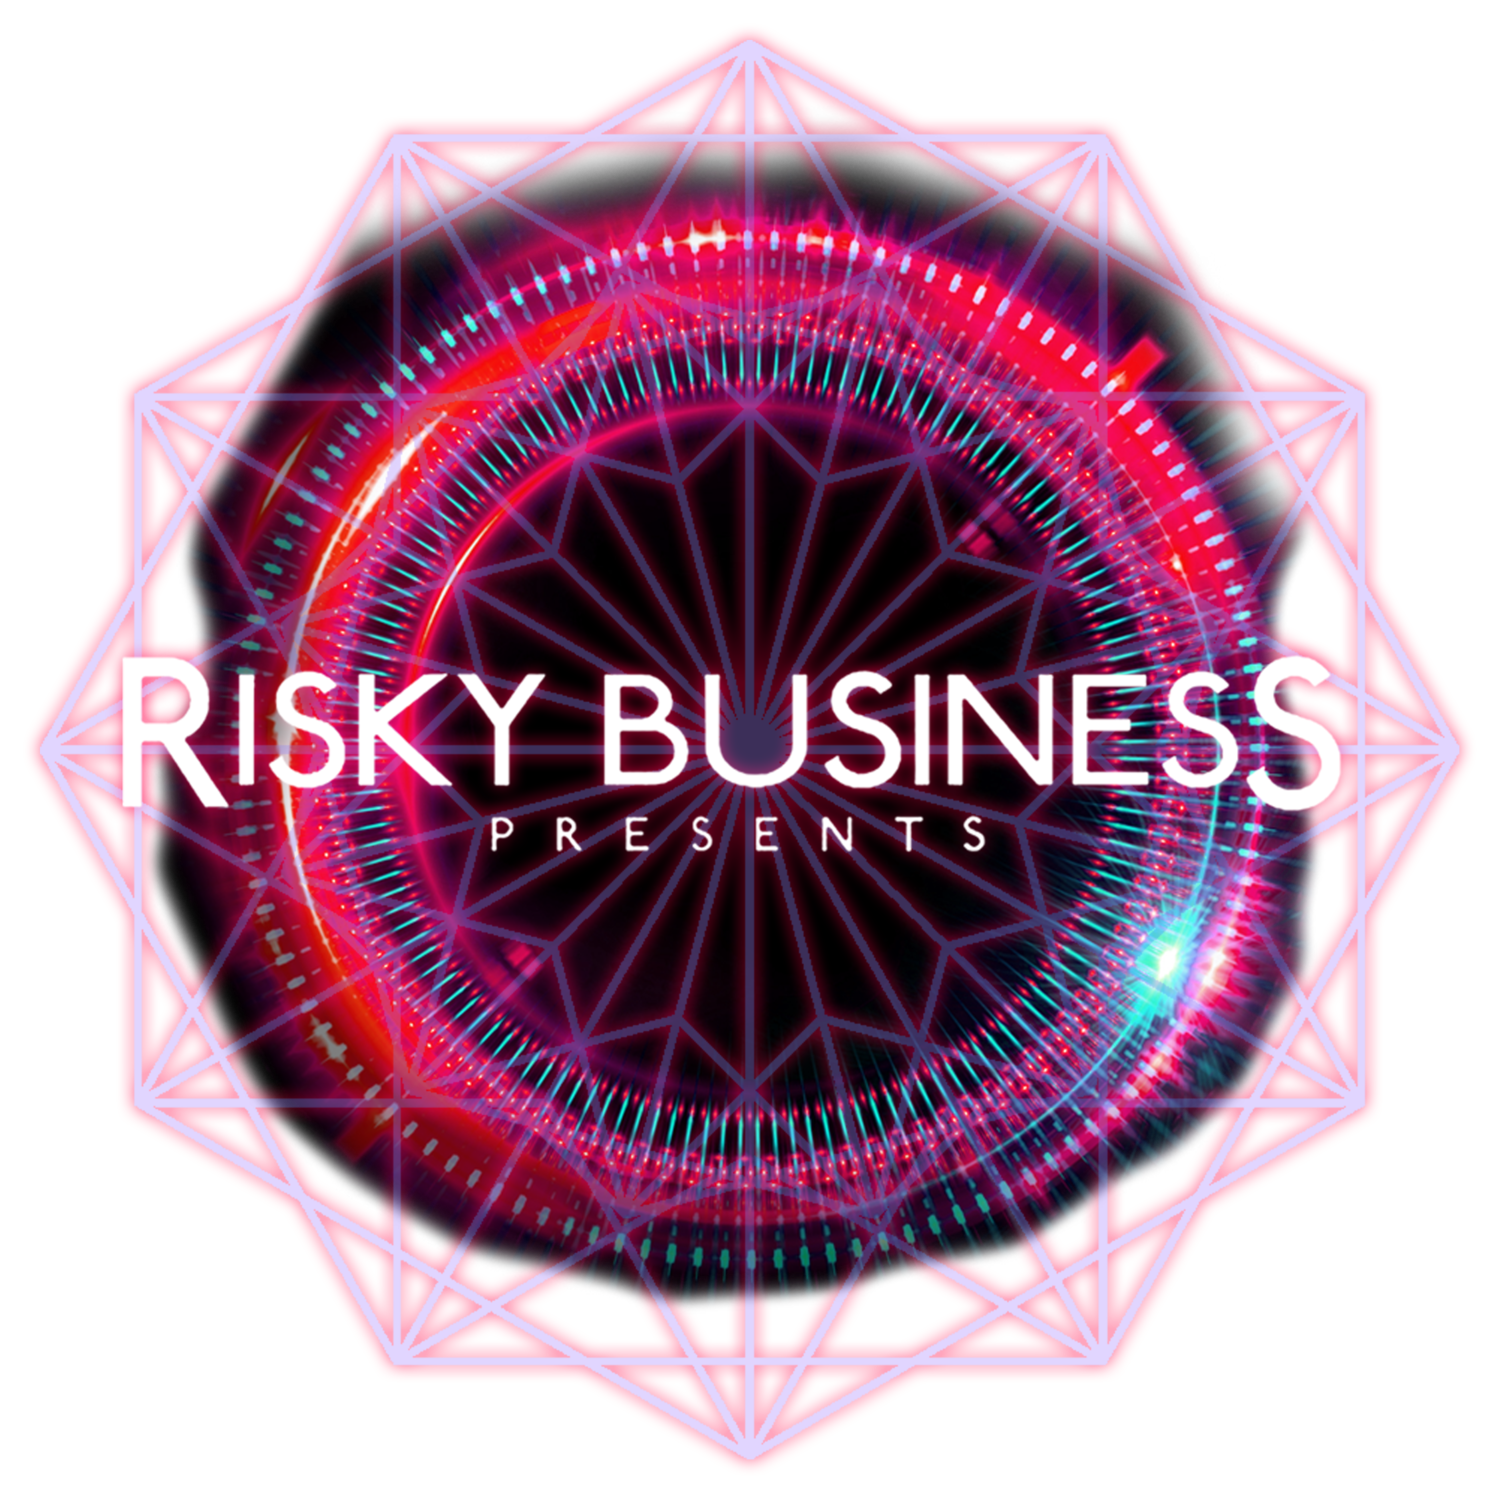 Risky Business Presents